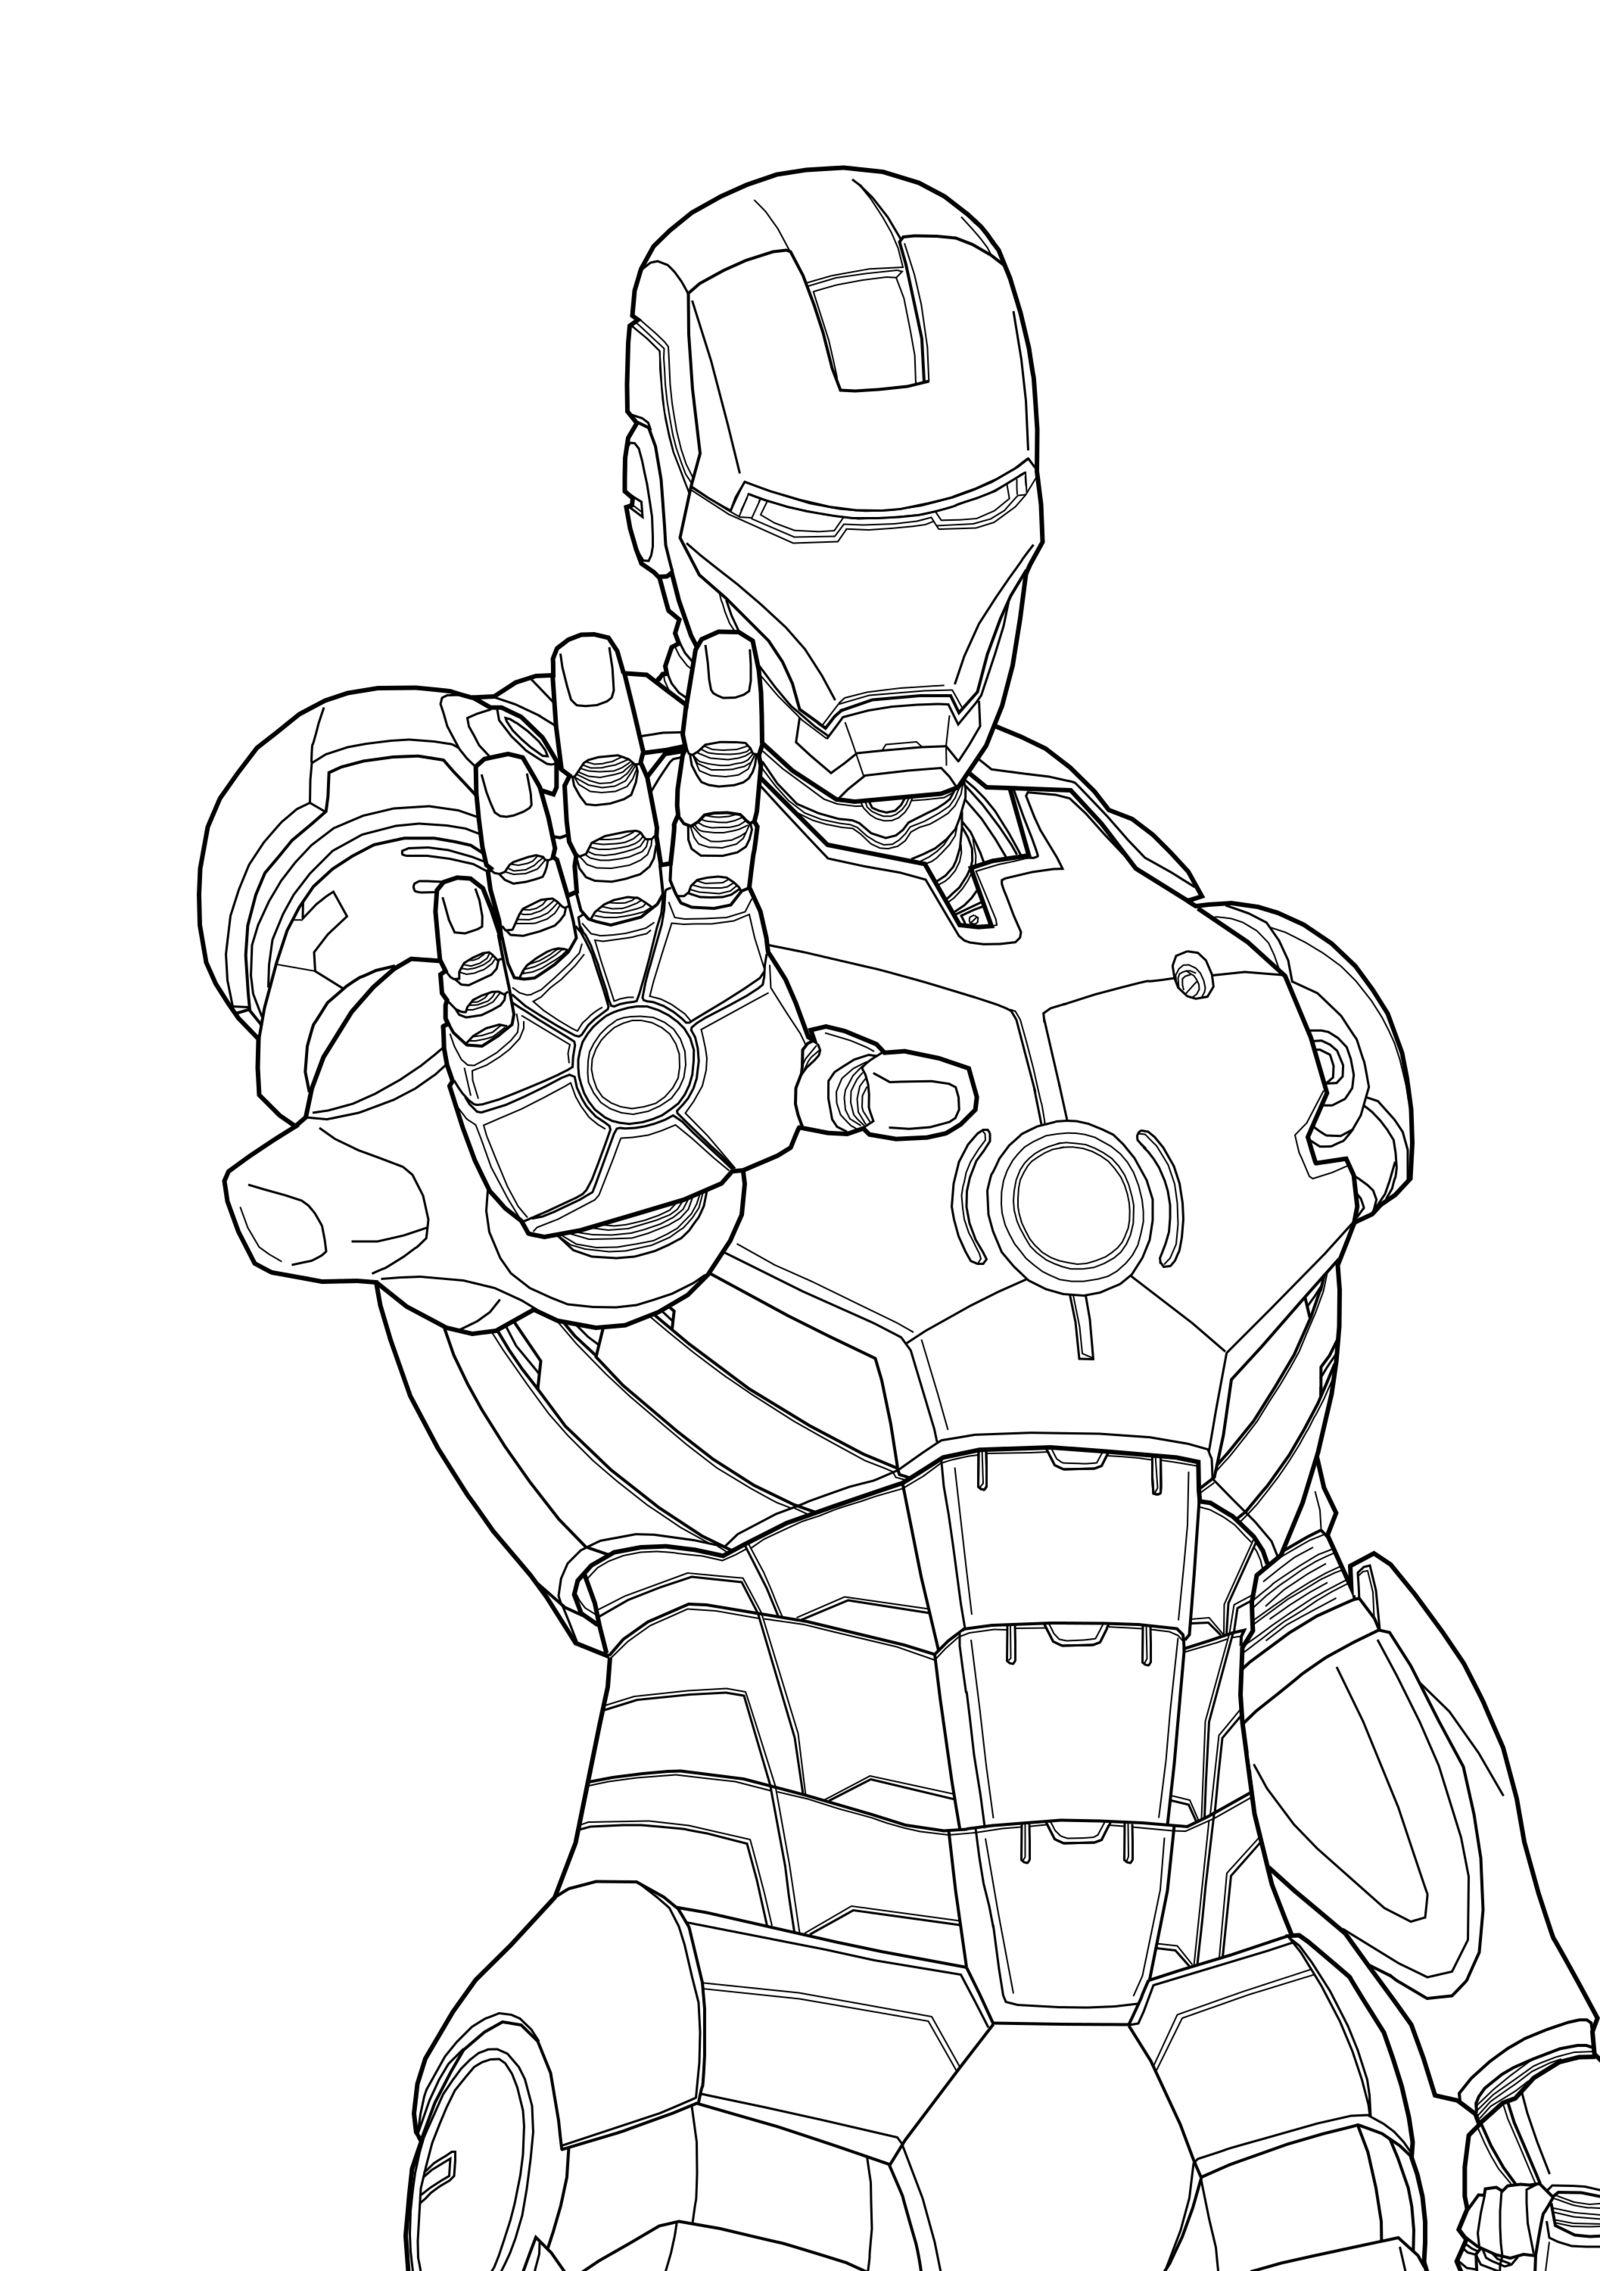 Iron man online coloring games - Iron Man Marvel Iron Man Coloring Pages Kids Iron Man Coloring Pages Free Printable For Adult